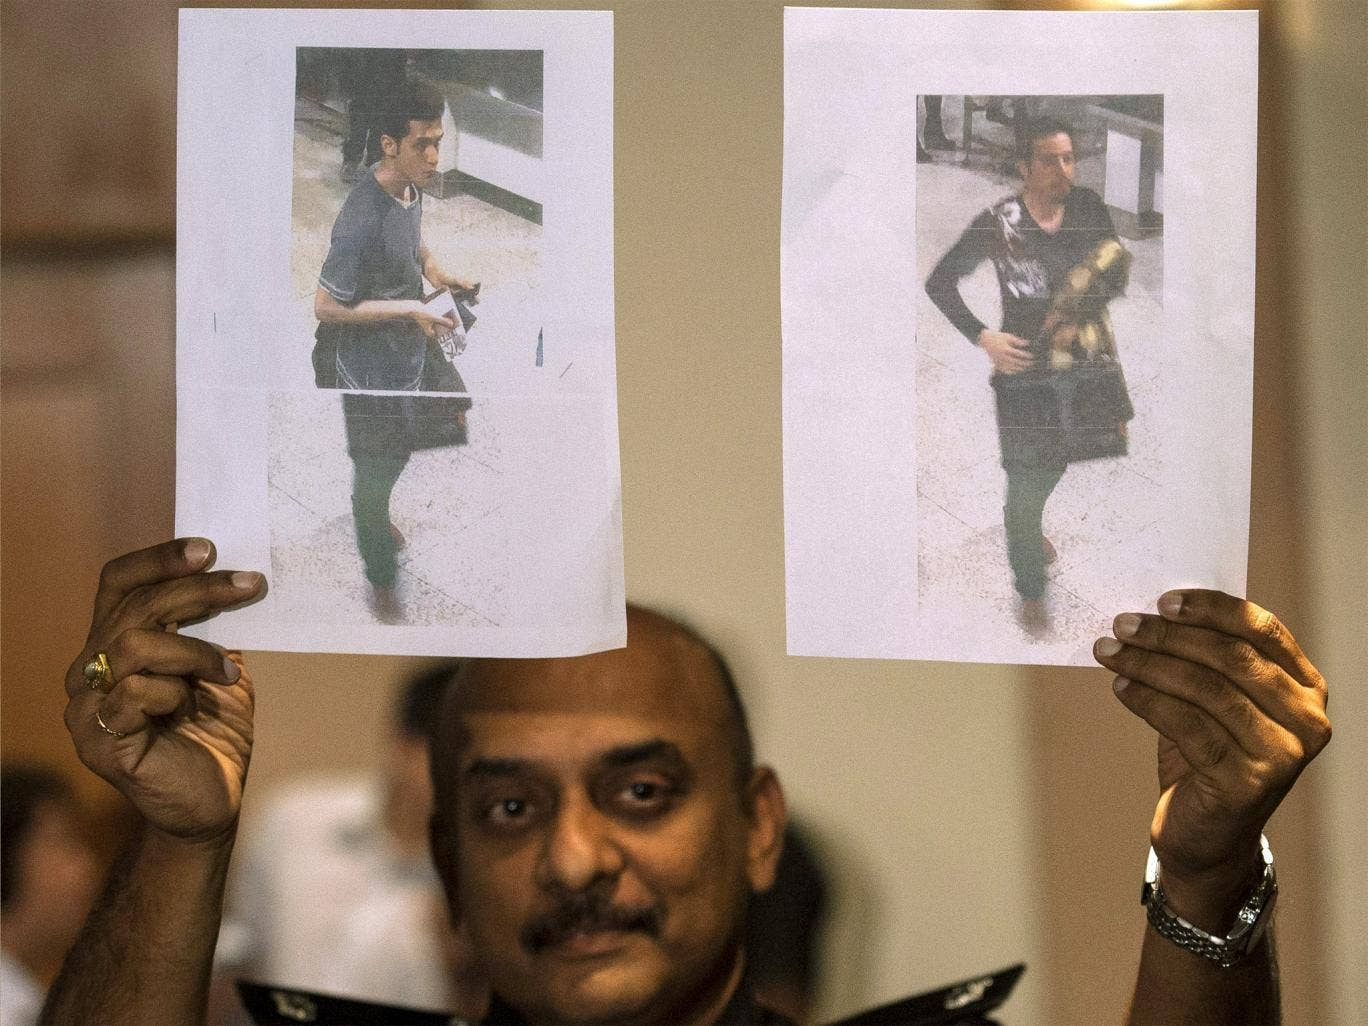 A Malaysian Police officer holds photos of two suspects believed to have travelled with stolen passports on the missing Malaysian Airlines flight